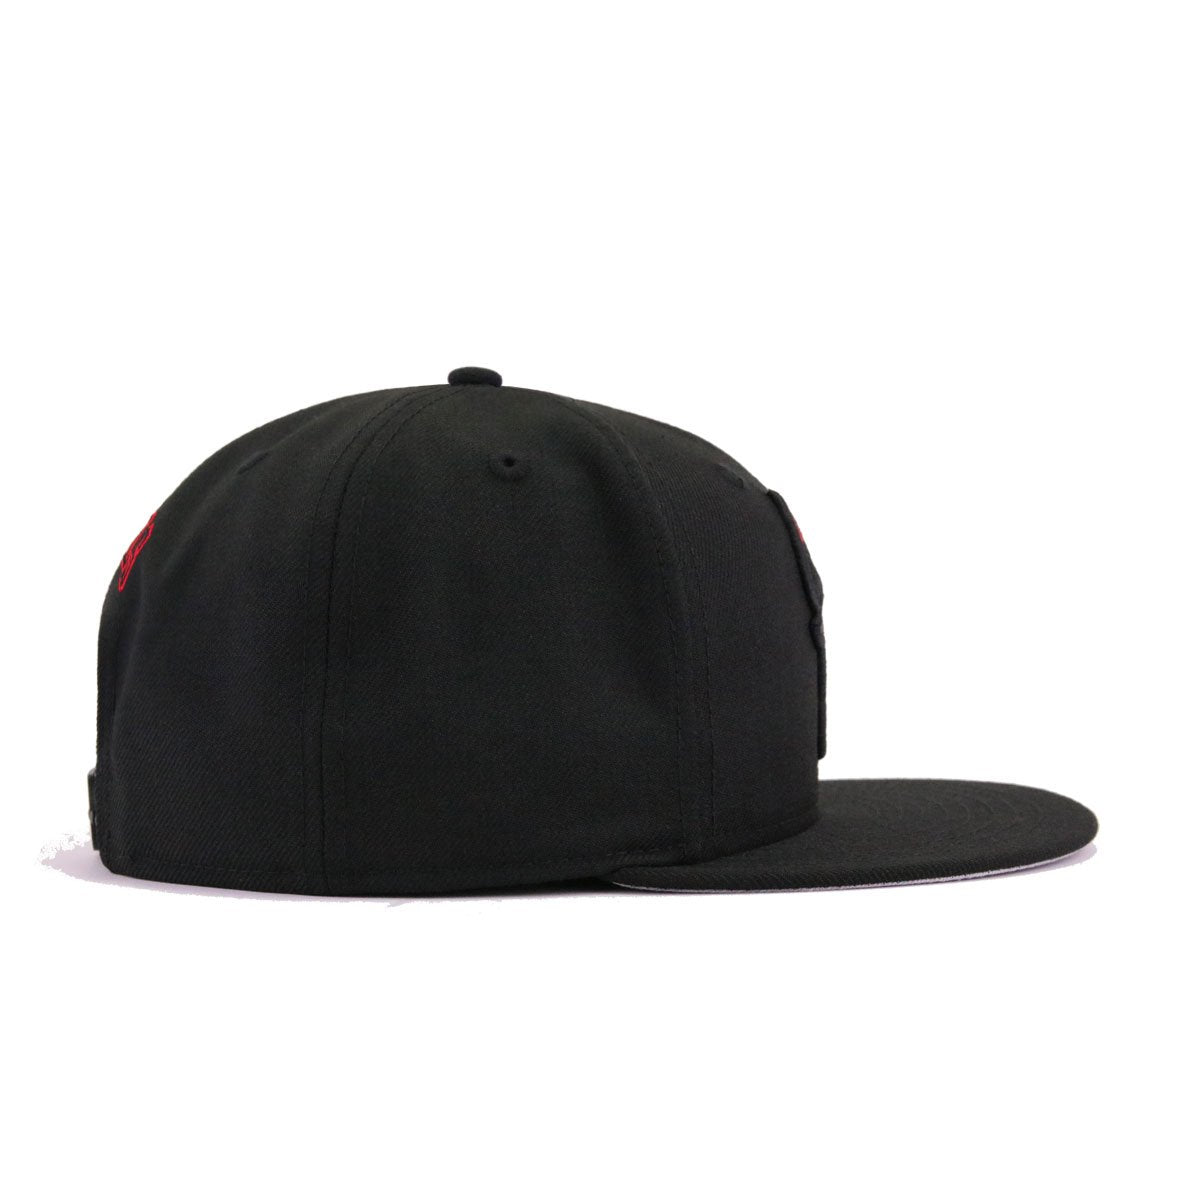 promo code 20a57 15a83 Chicago Bulls Black Scarlet Horn Tip New Era 9Fifty Snapback